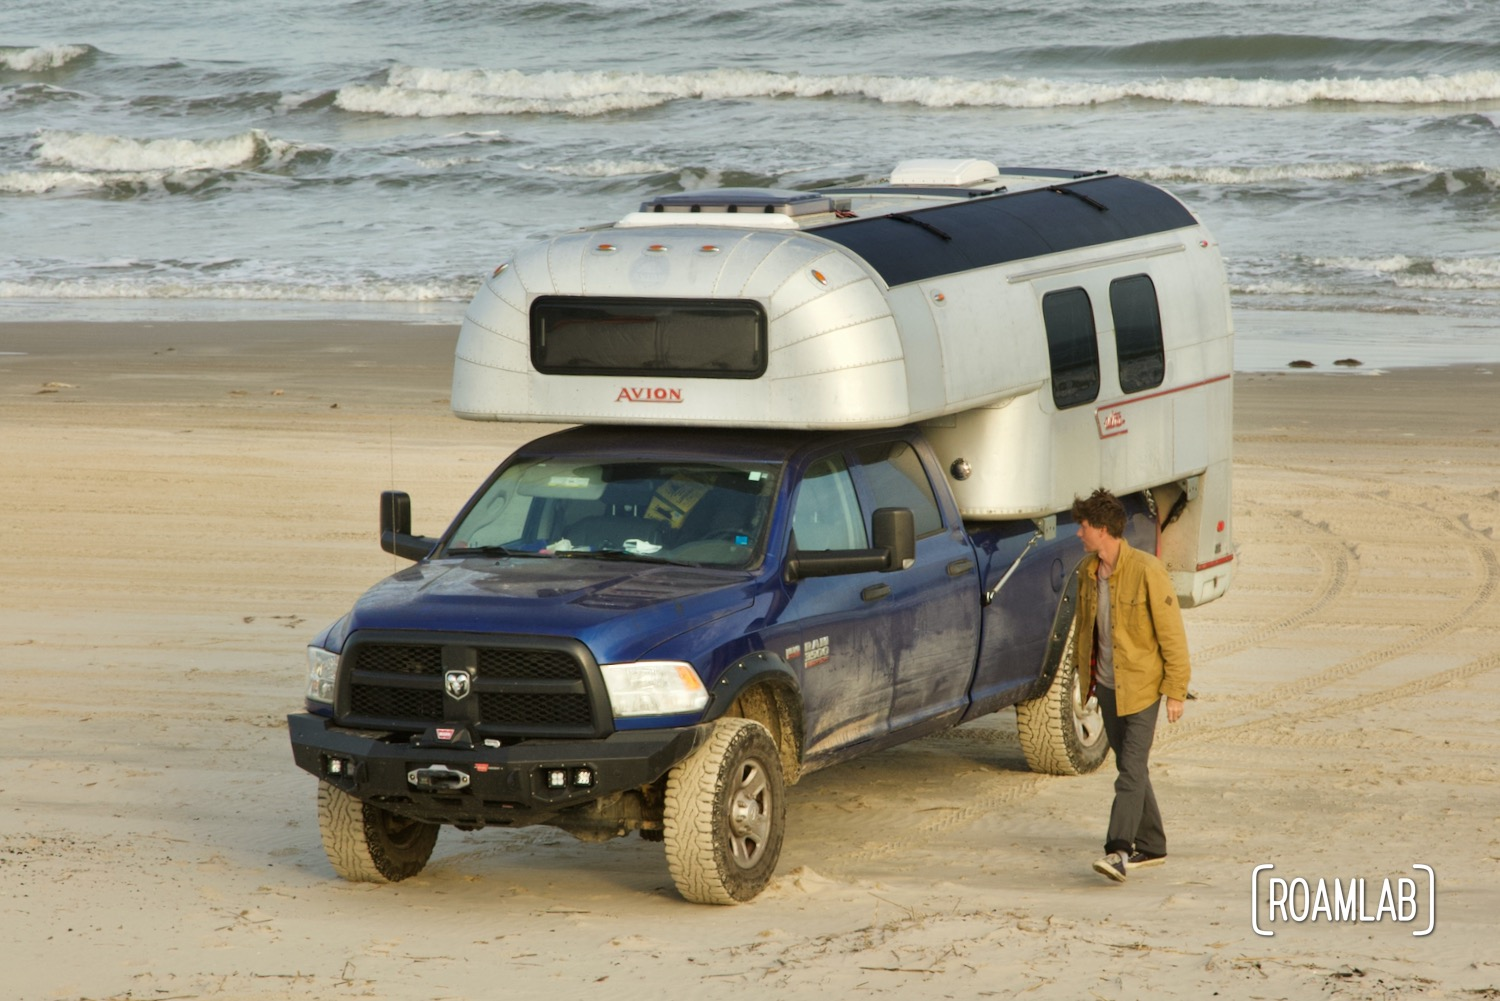 Man walking along the beach, inspecting a 1970 Avion C11 truck camper parked by the water at South Beach Padre Island National Seashore, Texas.